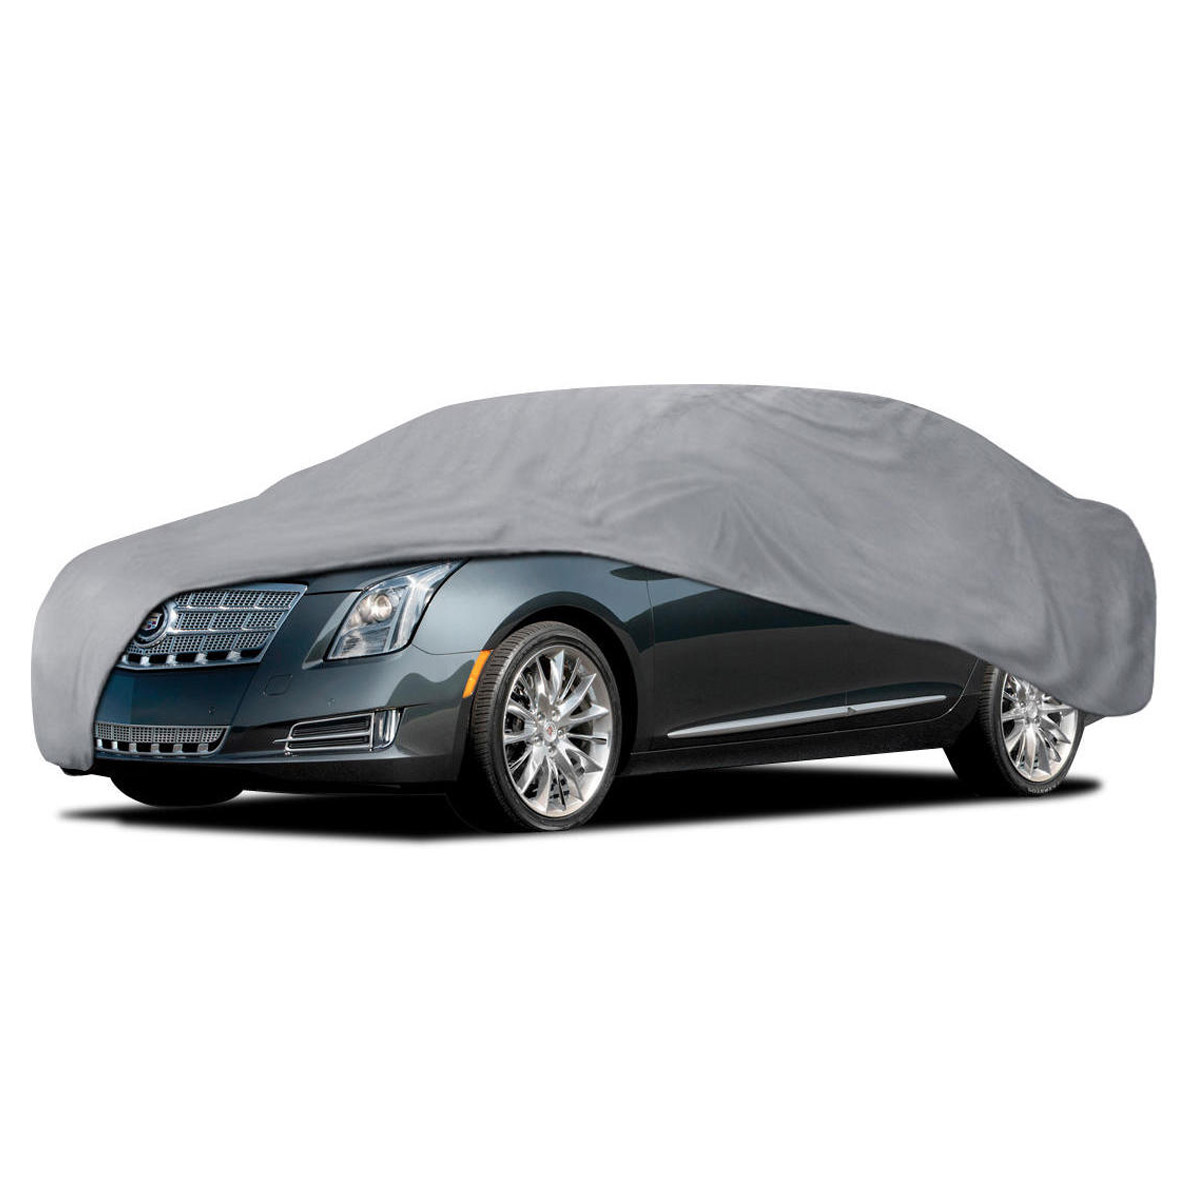 Car Cover For Cadillac XTS 4 Layers Outdoor Waterproof Sun